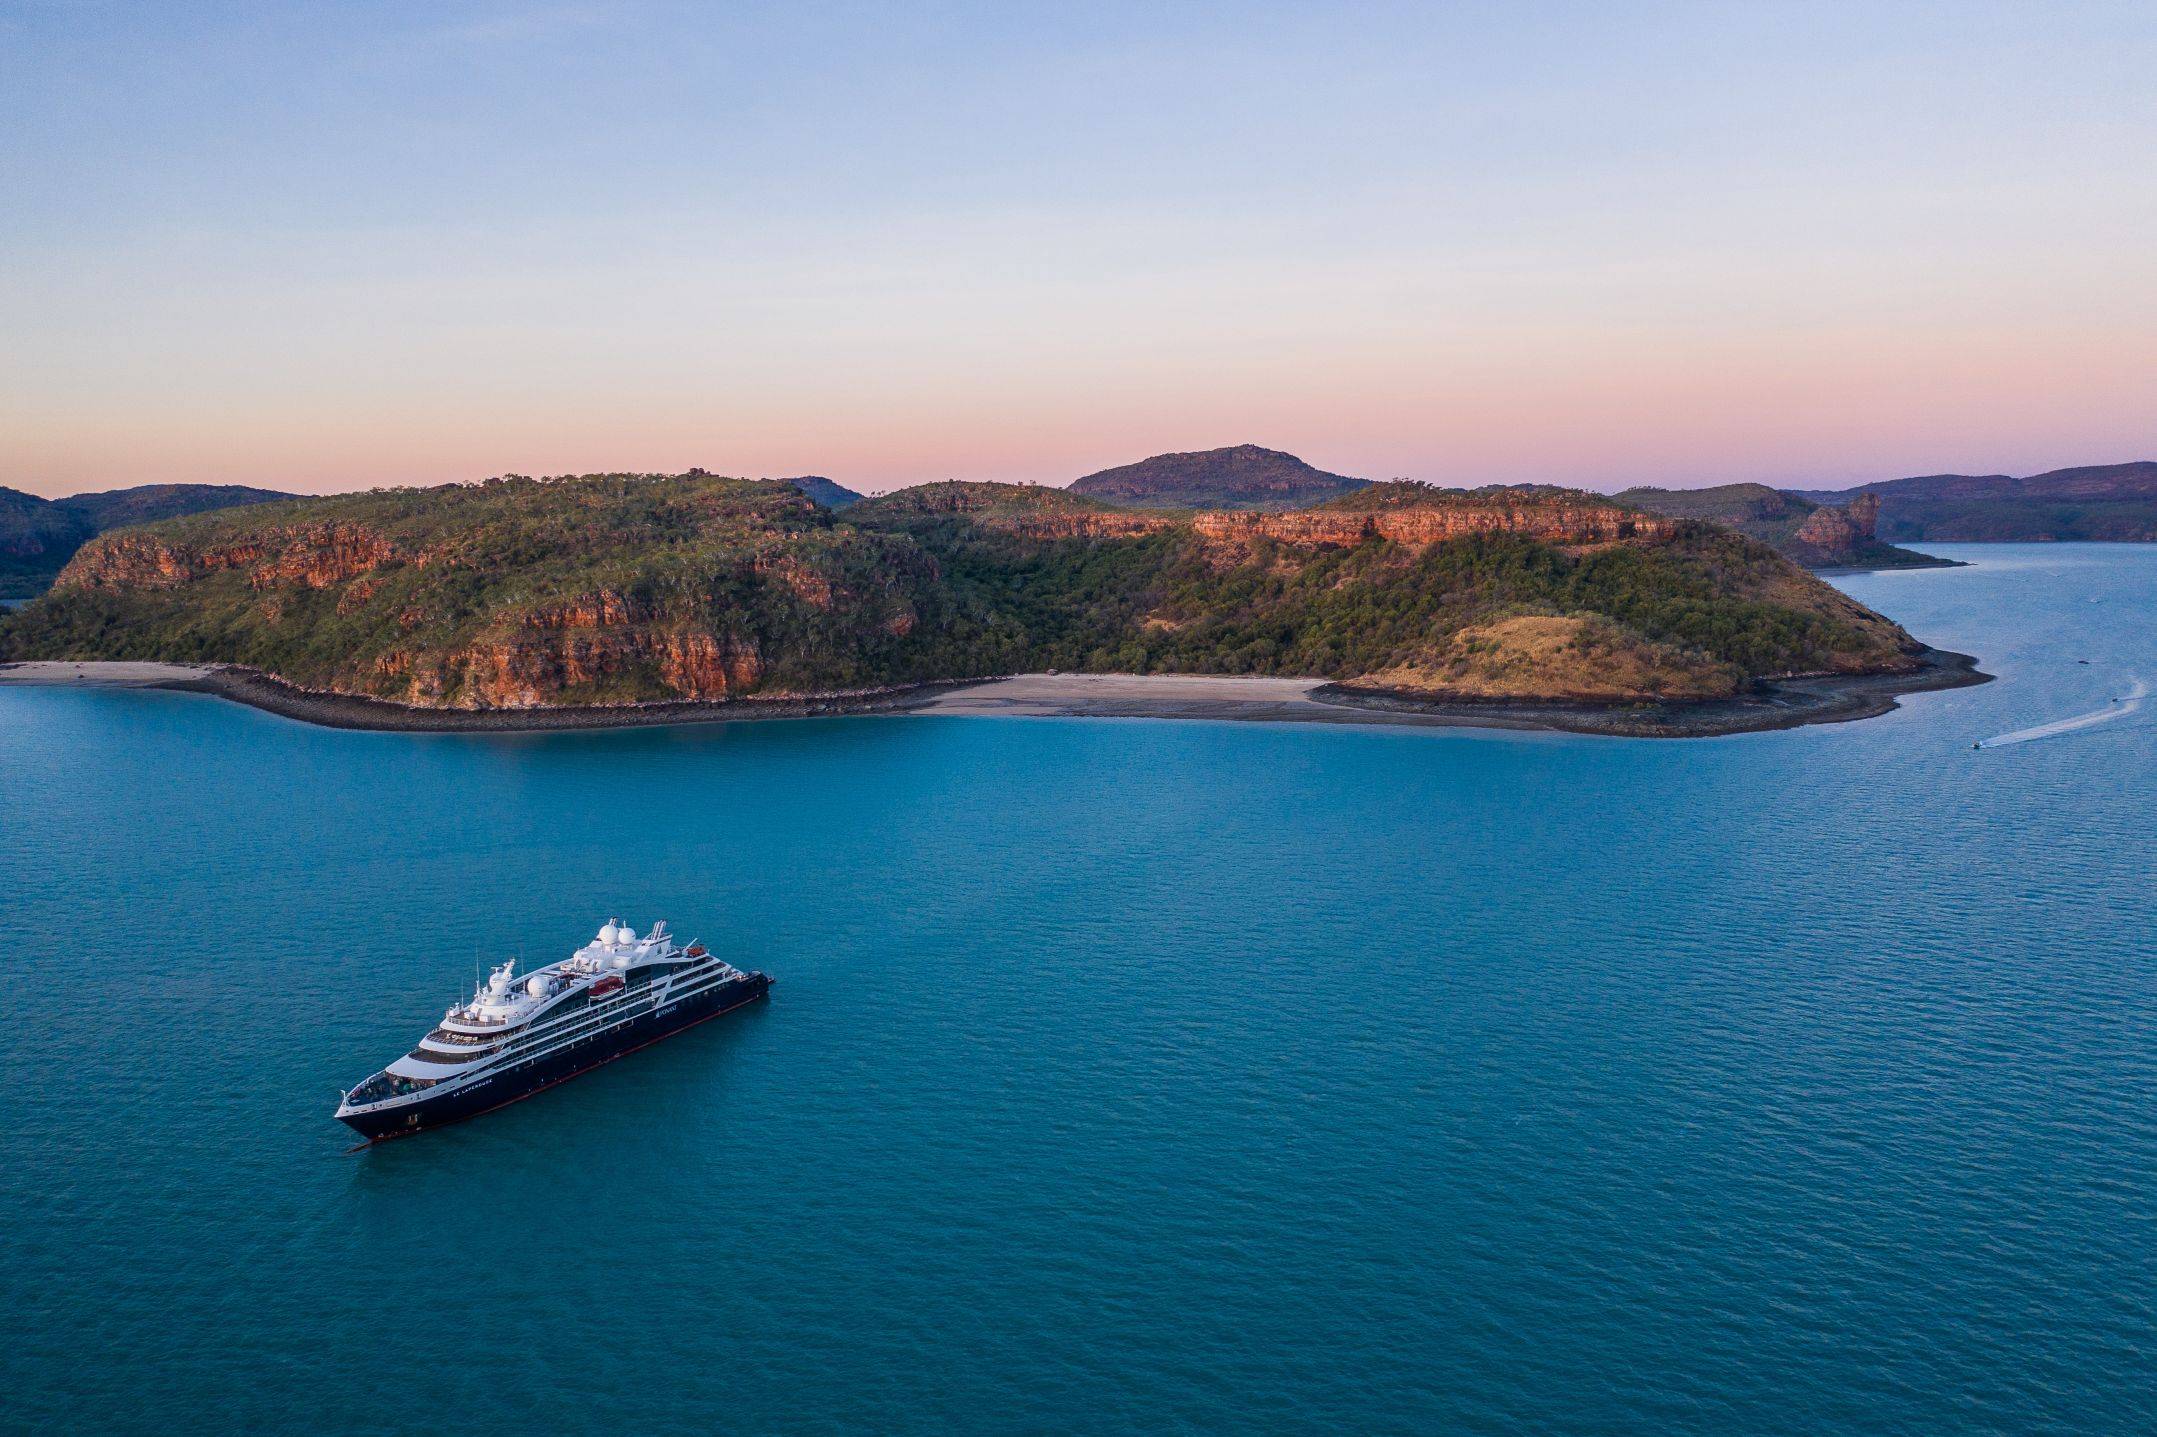 Packed with maritime history, unique wildlife, and geological wonders, cruise line Ponant will offer new luxury expedition itineraries that explore the many landscapes of Australia this year.